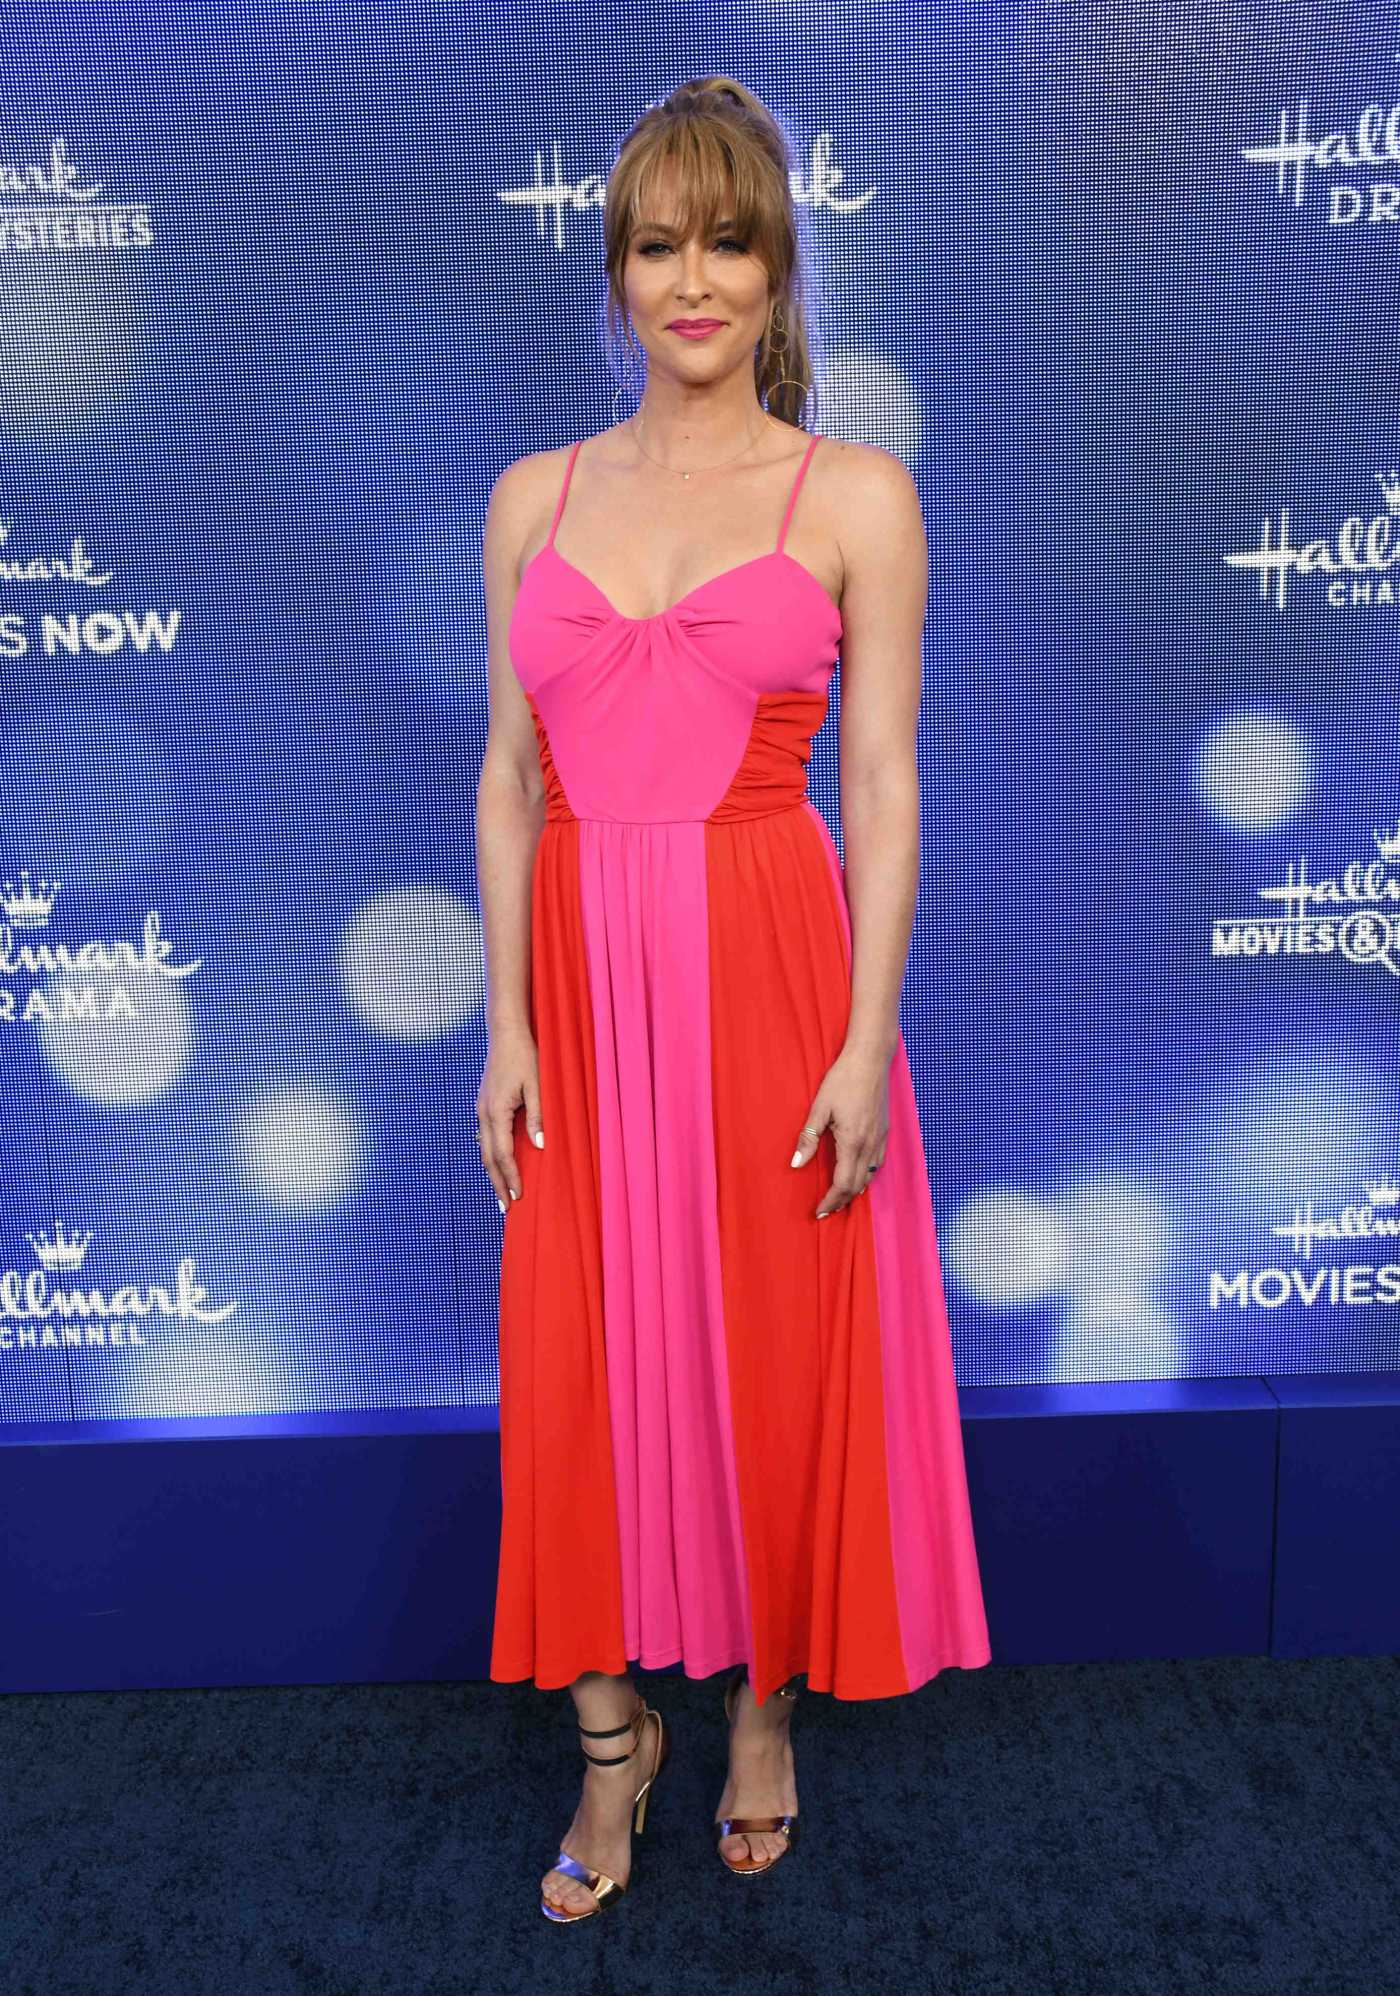 Jill Wagner Attends Hallmark Movies and Mysteries Summer TCA Press Tour Event in Beverly Hills 07/26/2019